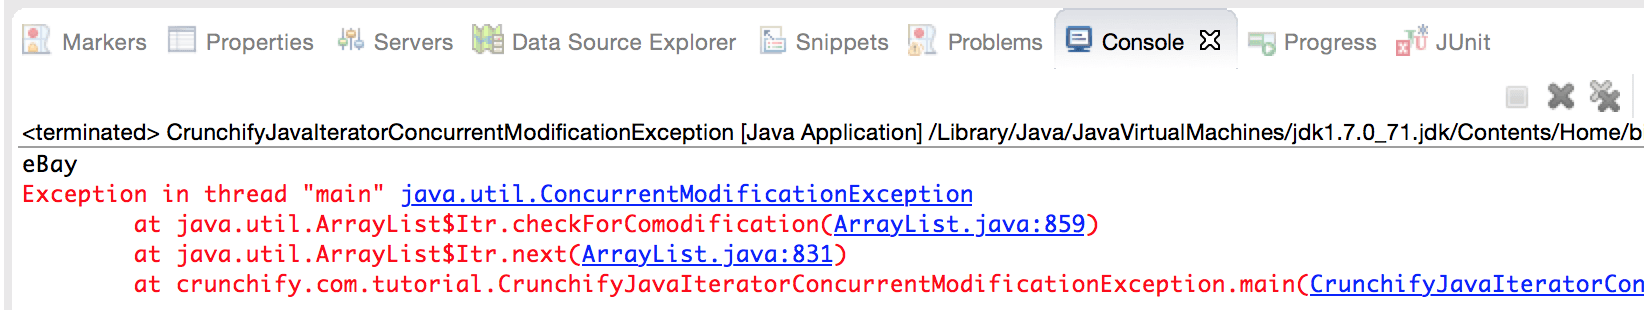 java.util.ConcurrentModificationException Example